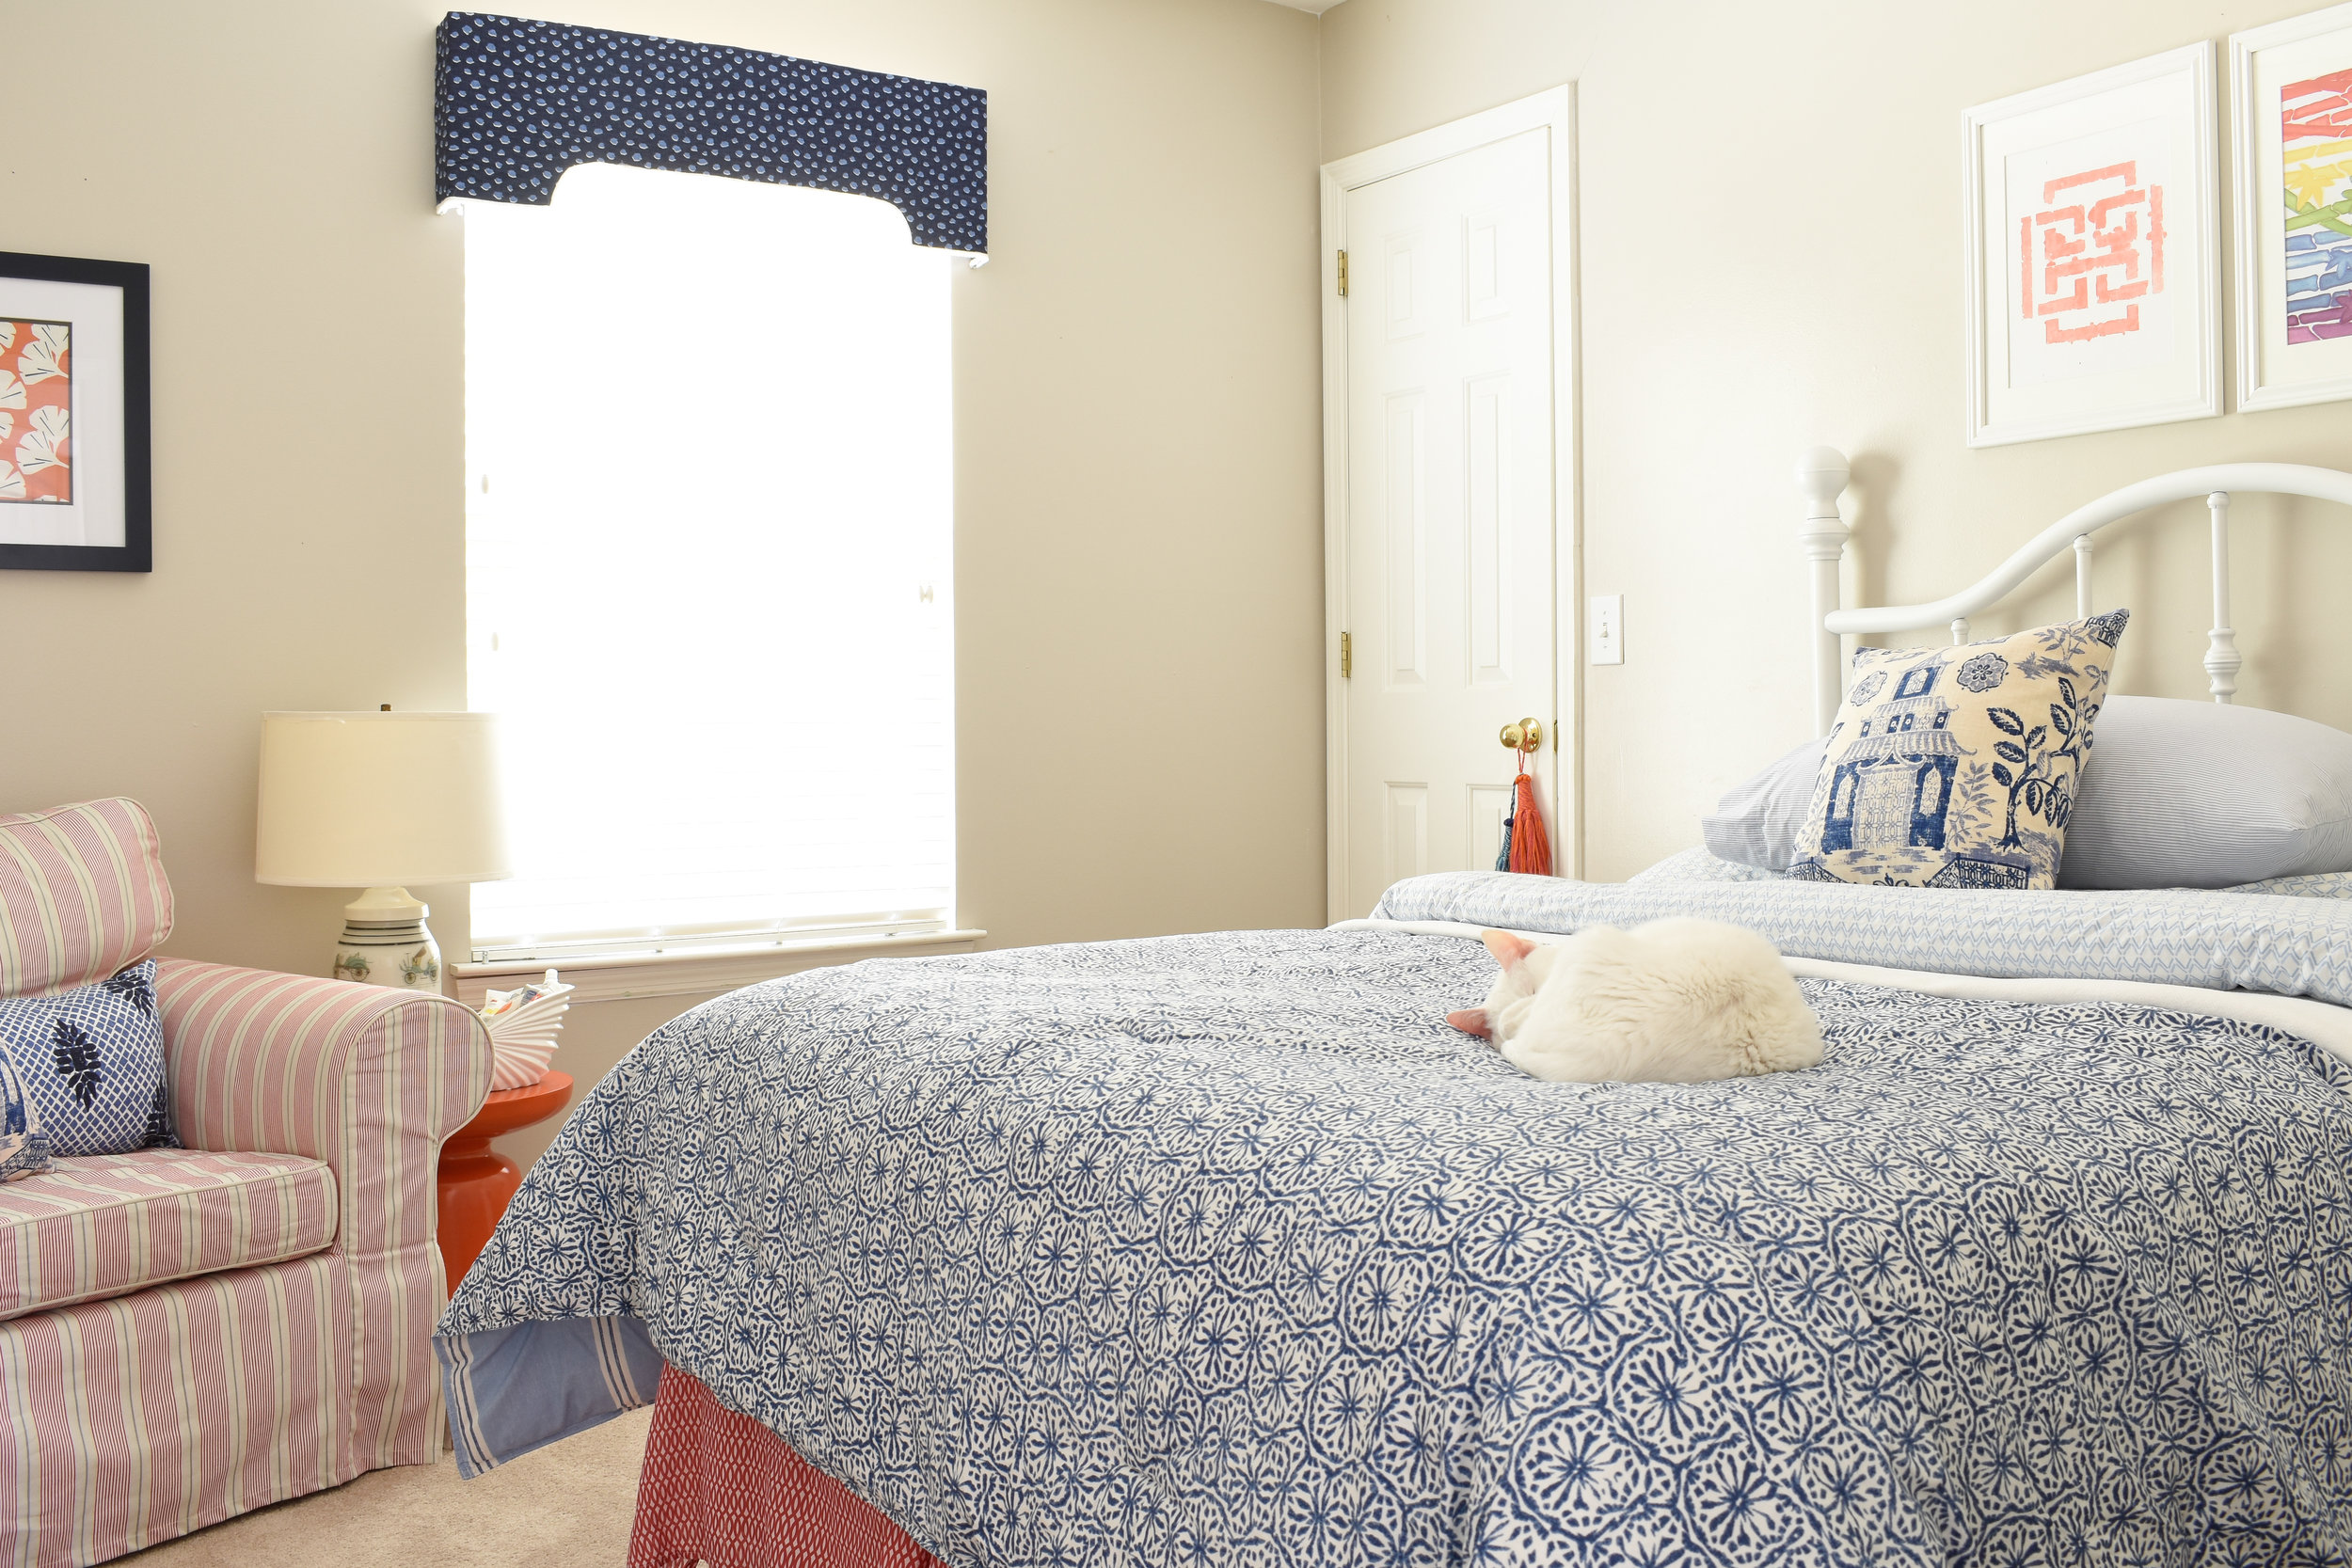 chinoiserie style - this colorful bedroom with mixed textiles creates a fun space for guests to relax